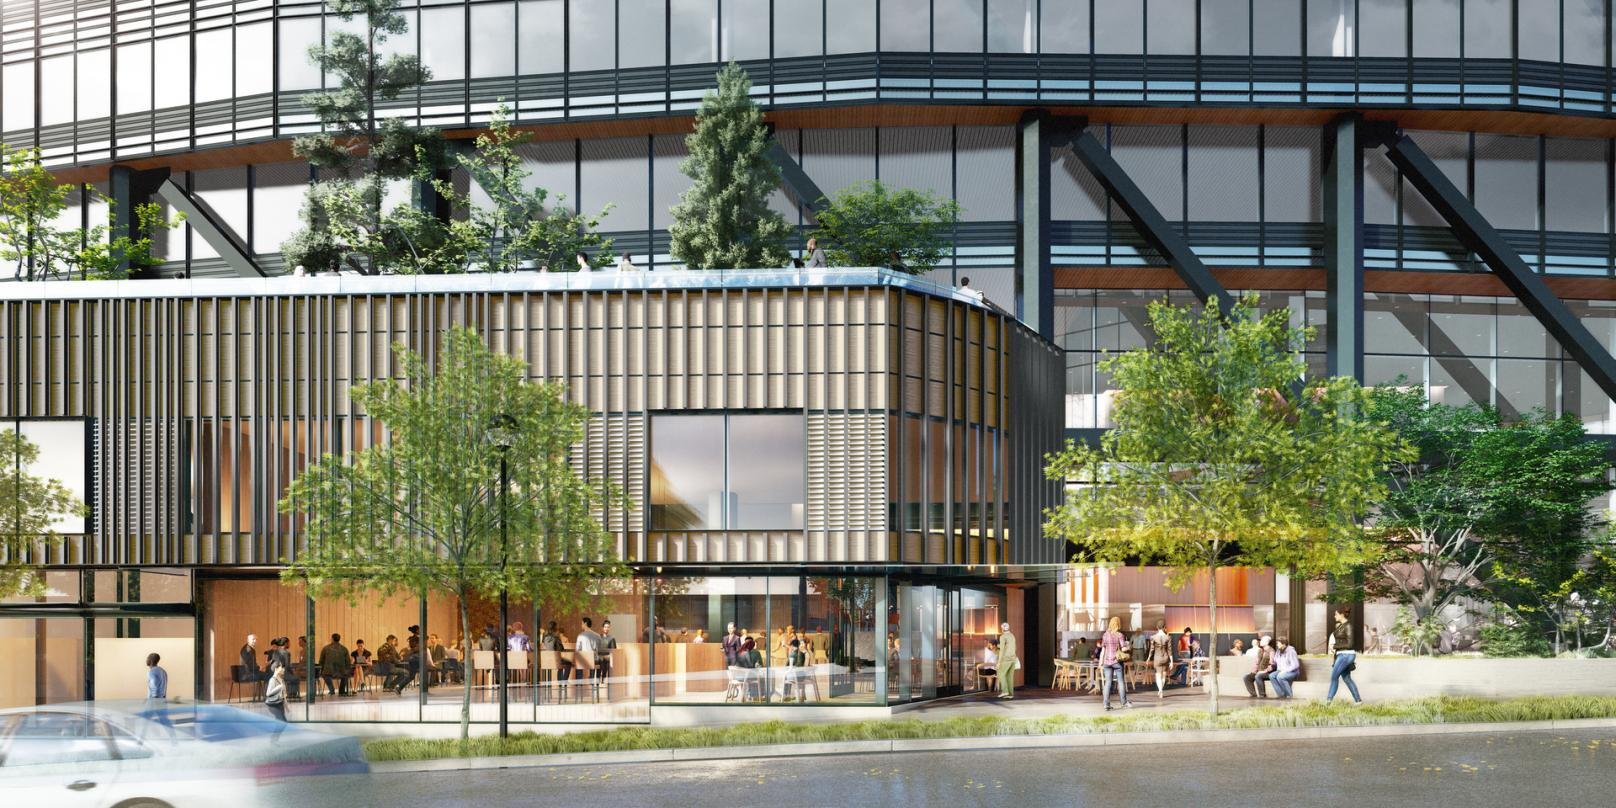 Pedestrian level view of dining area outside the next-generation Class A commercial office development design in Bellevue.